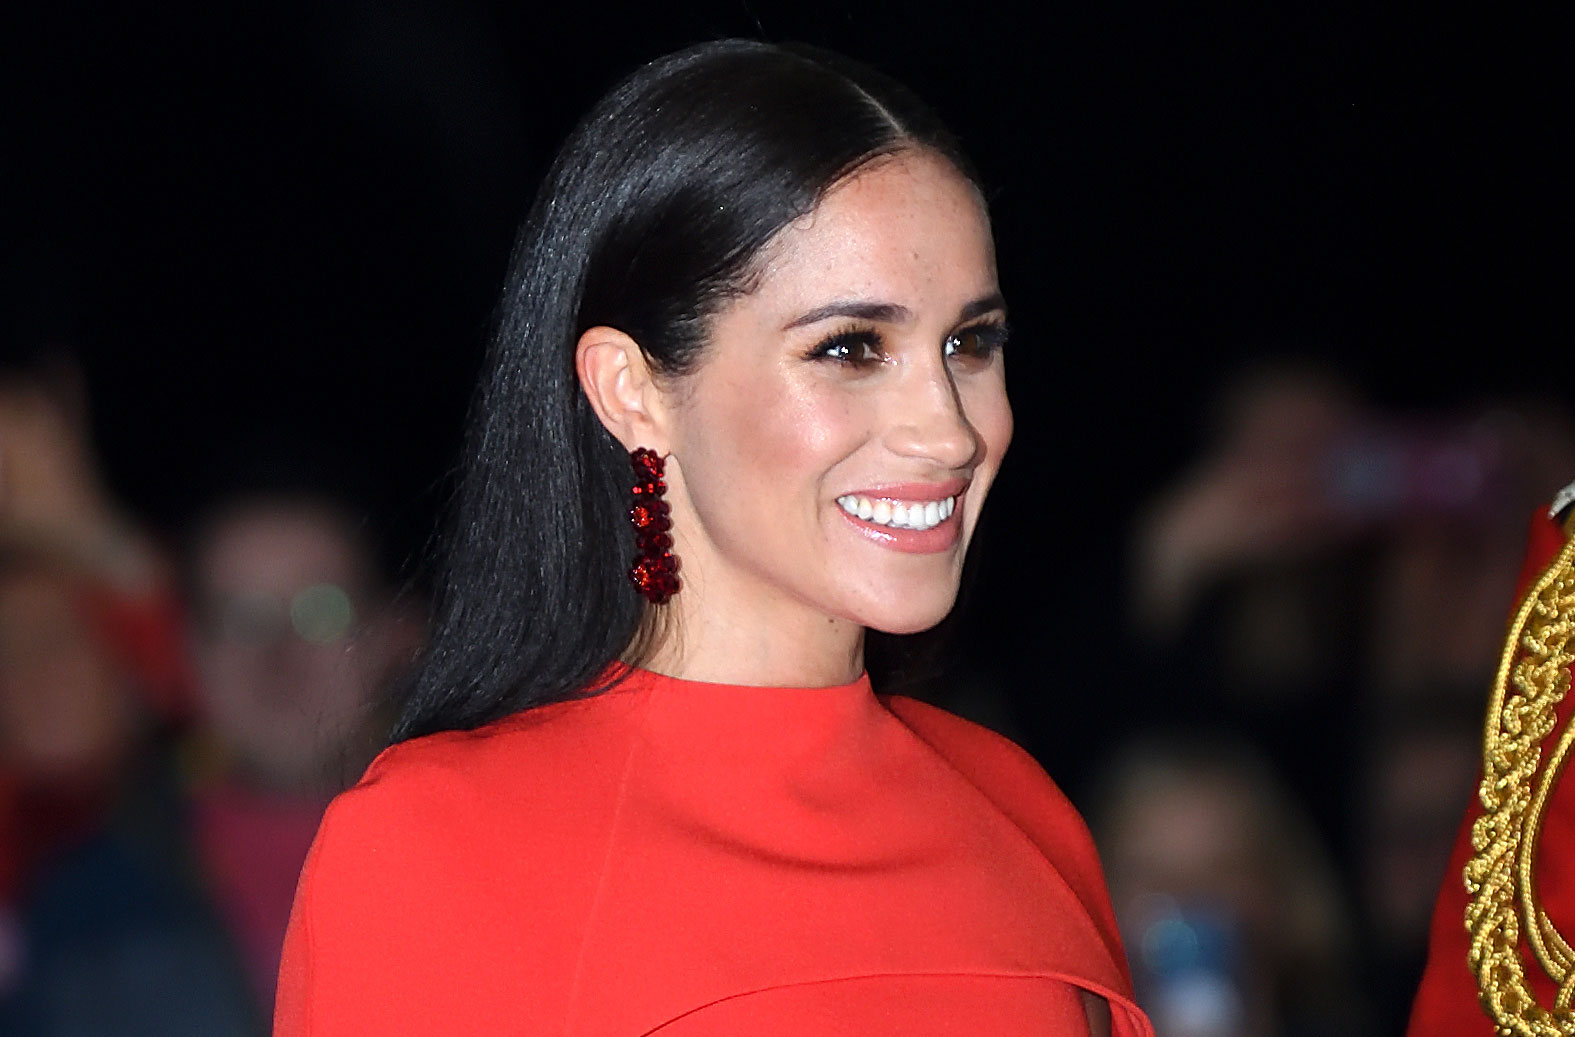 Meghan Markle sparks massive spike in sale of classy accessory